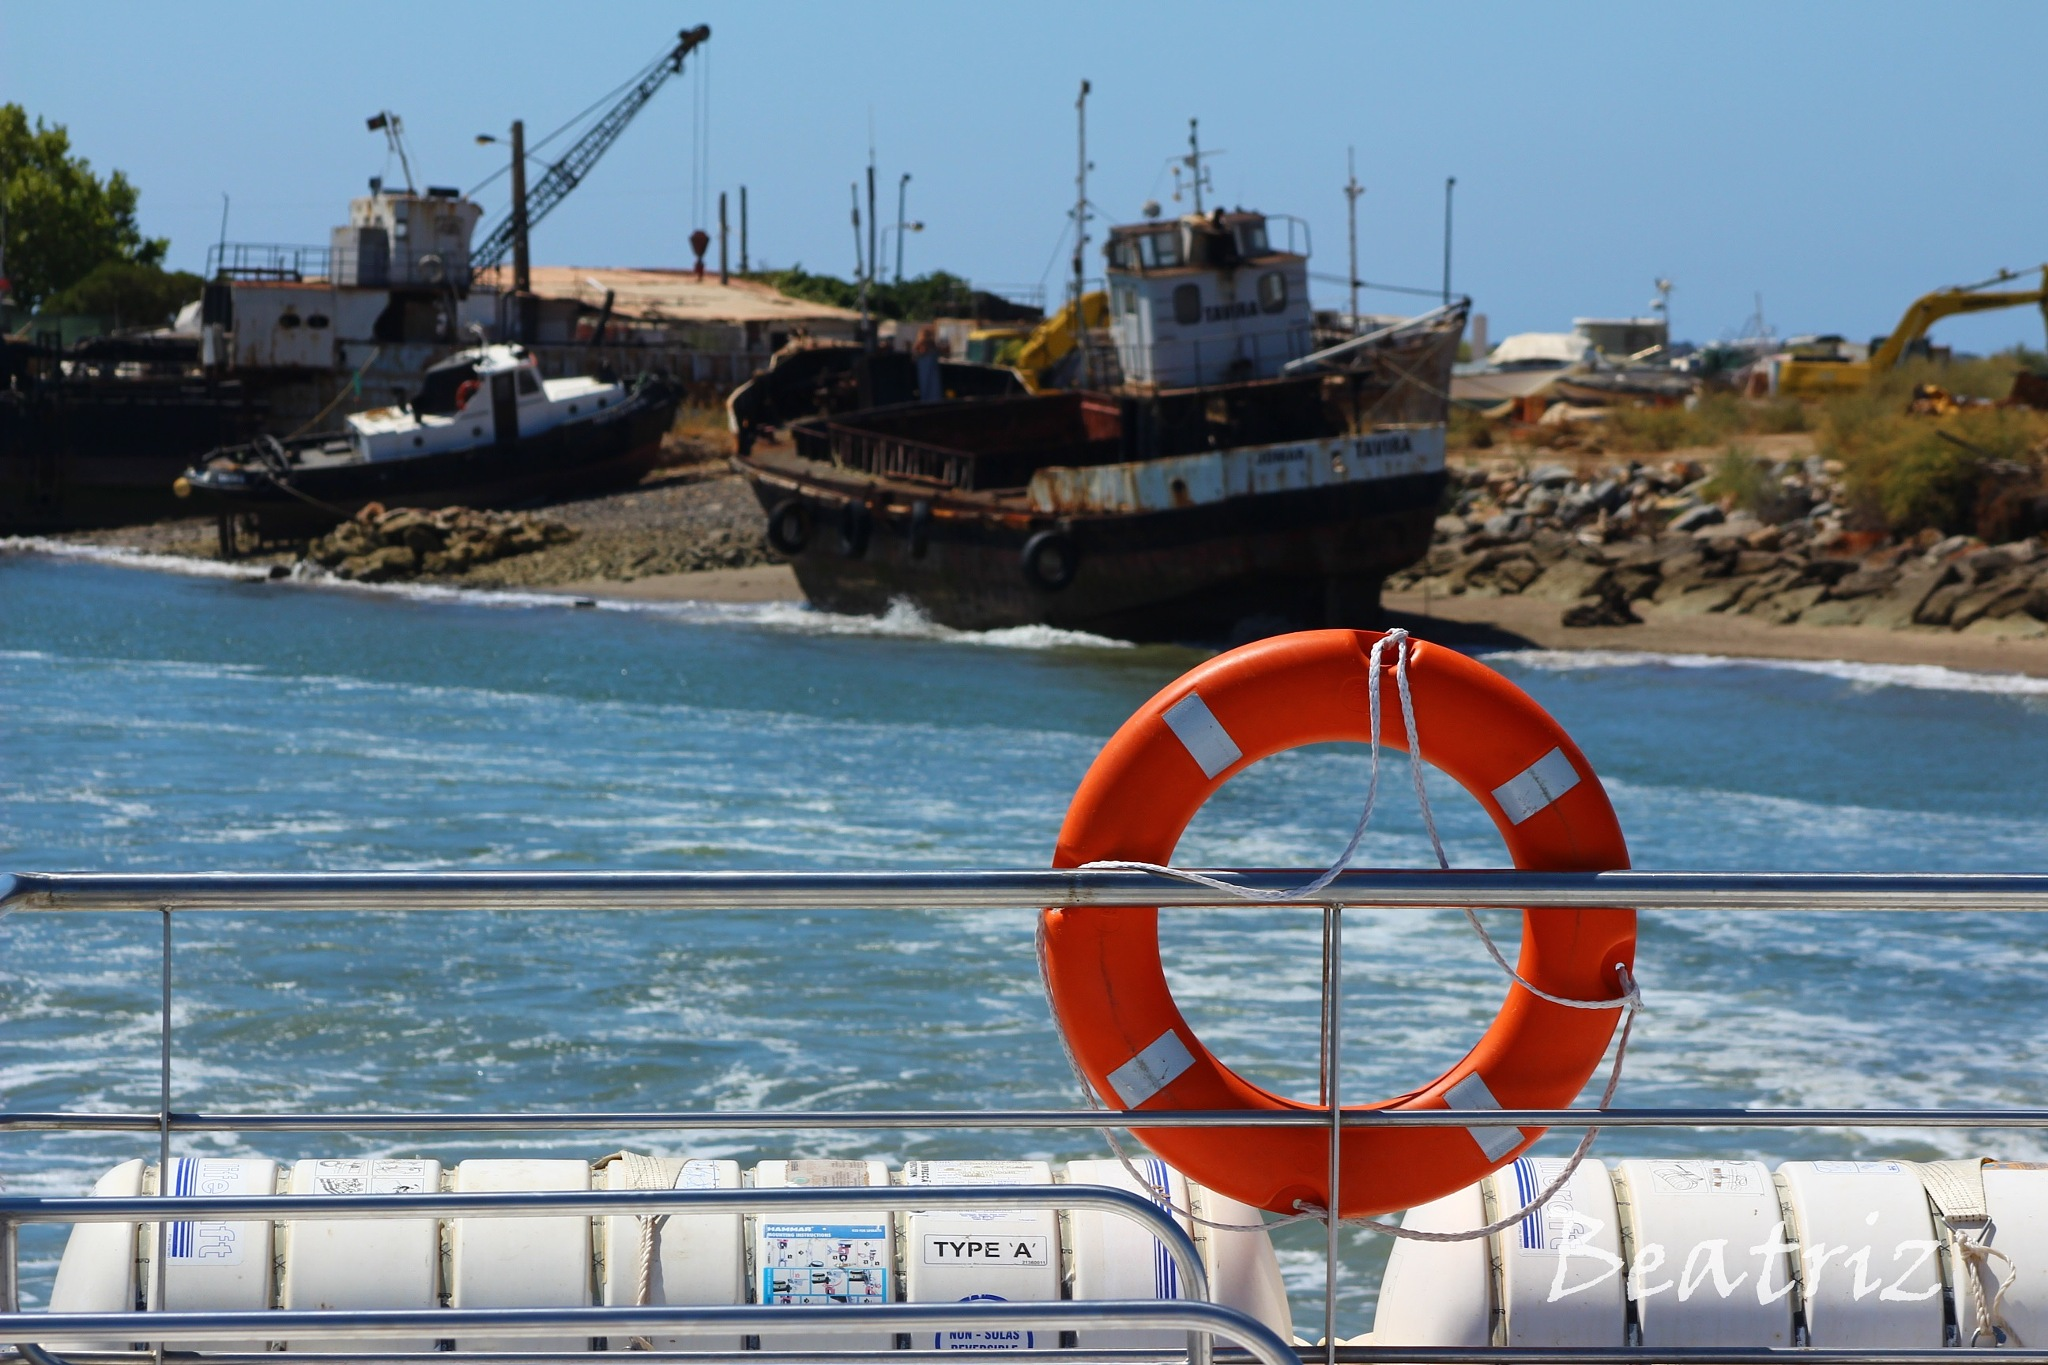 VIEW FROM A FERRY by Beatriz Rodrigues